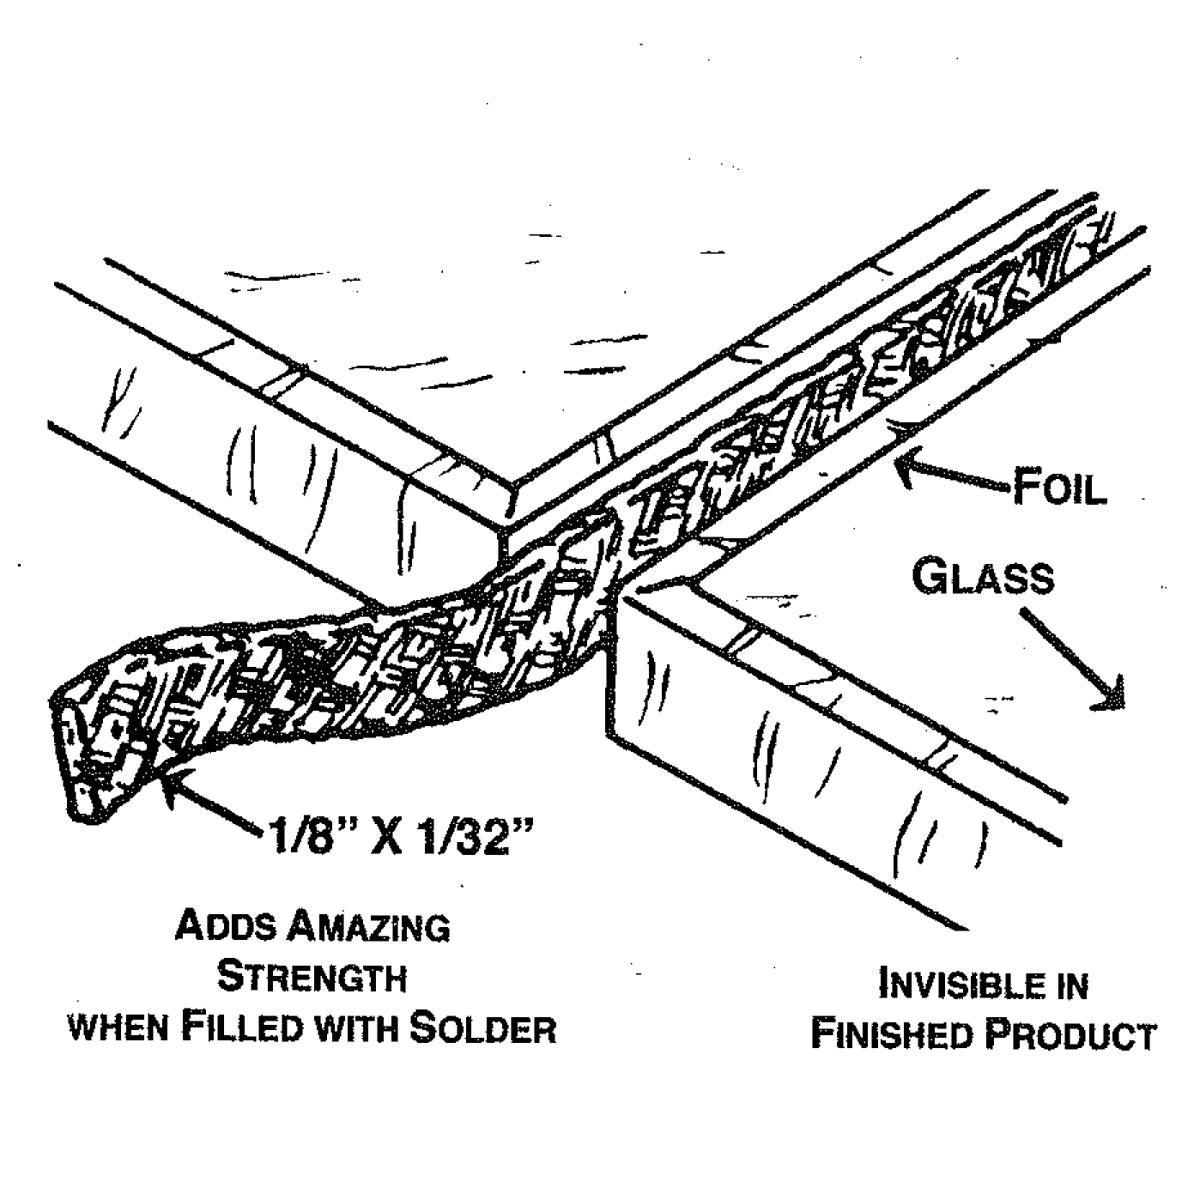 flex-bar reinforcement braid